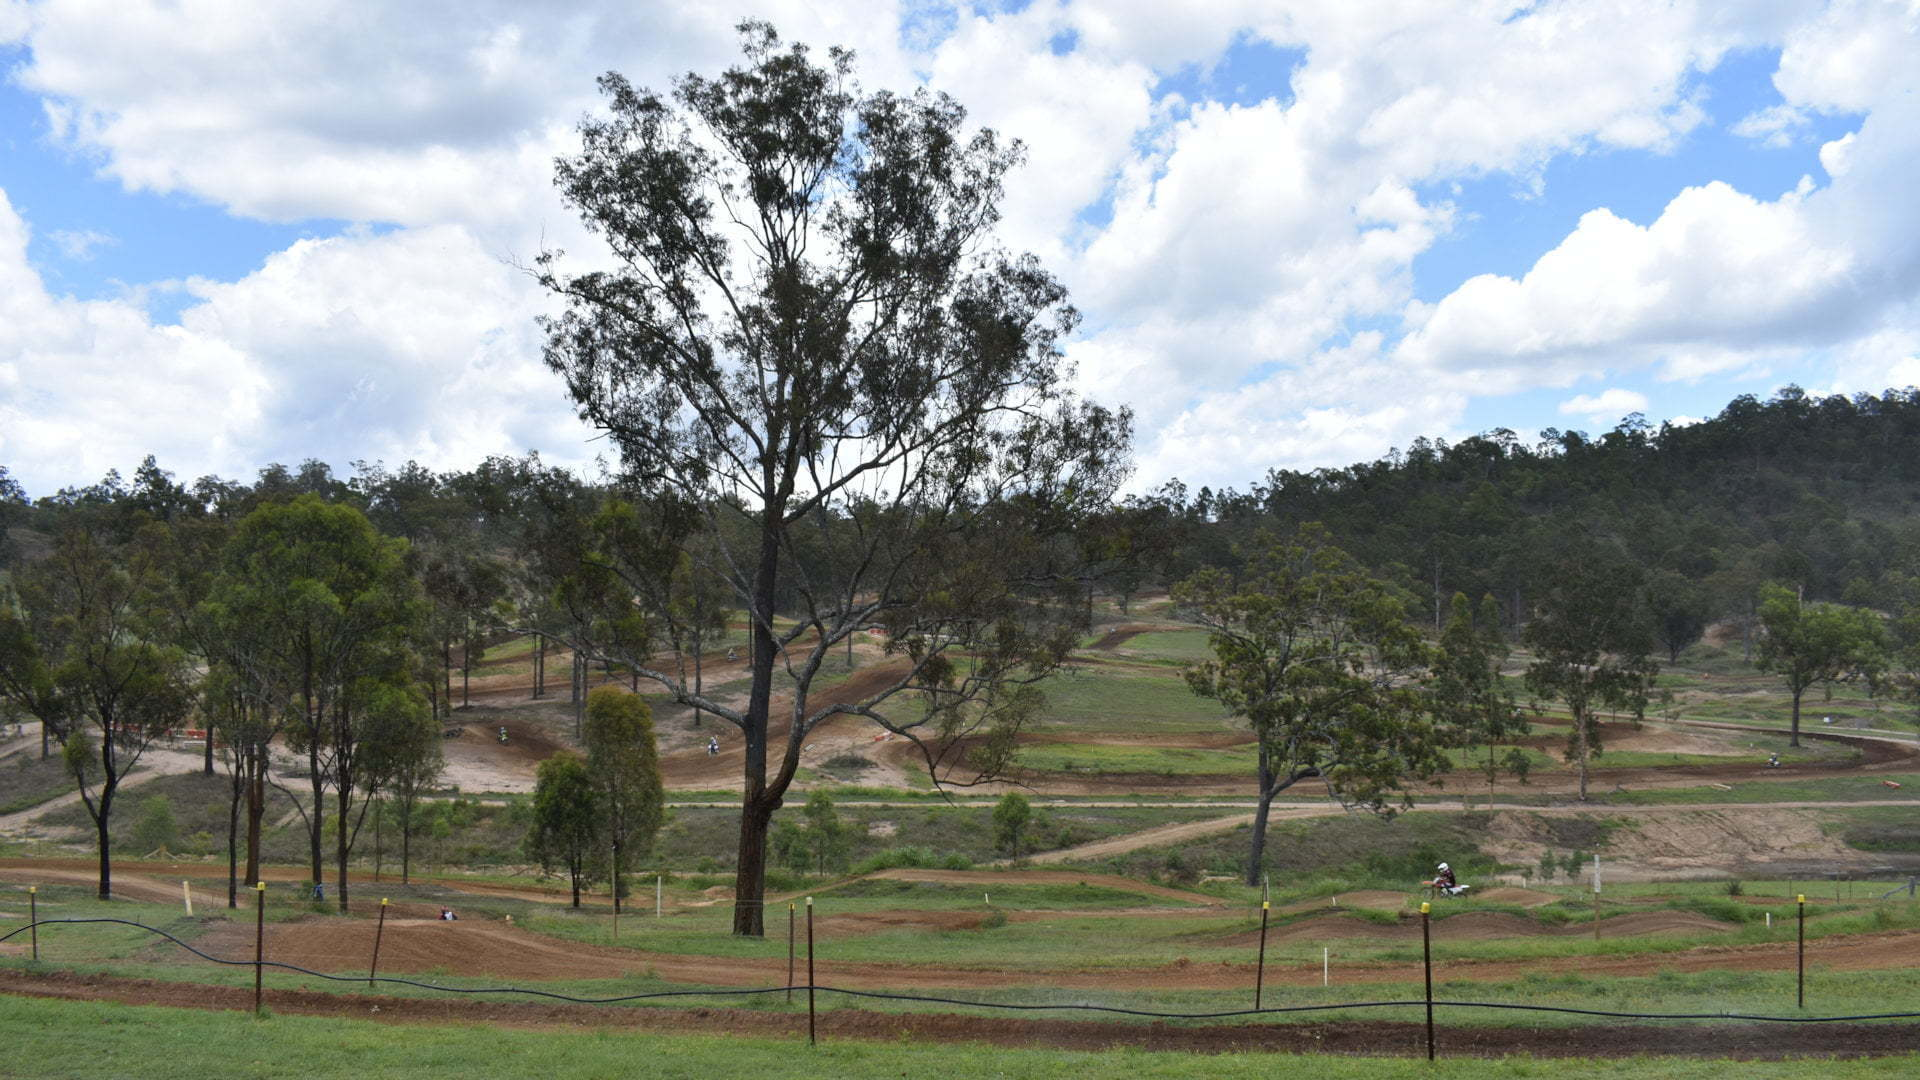 Motorbike trails in the hills, at Queensland Moto Park in the Wyaralong district in the Scenic Rim